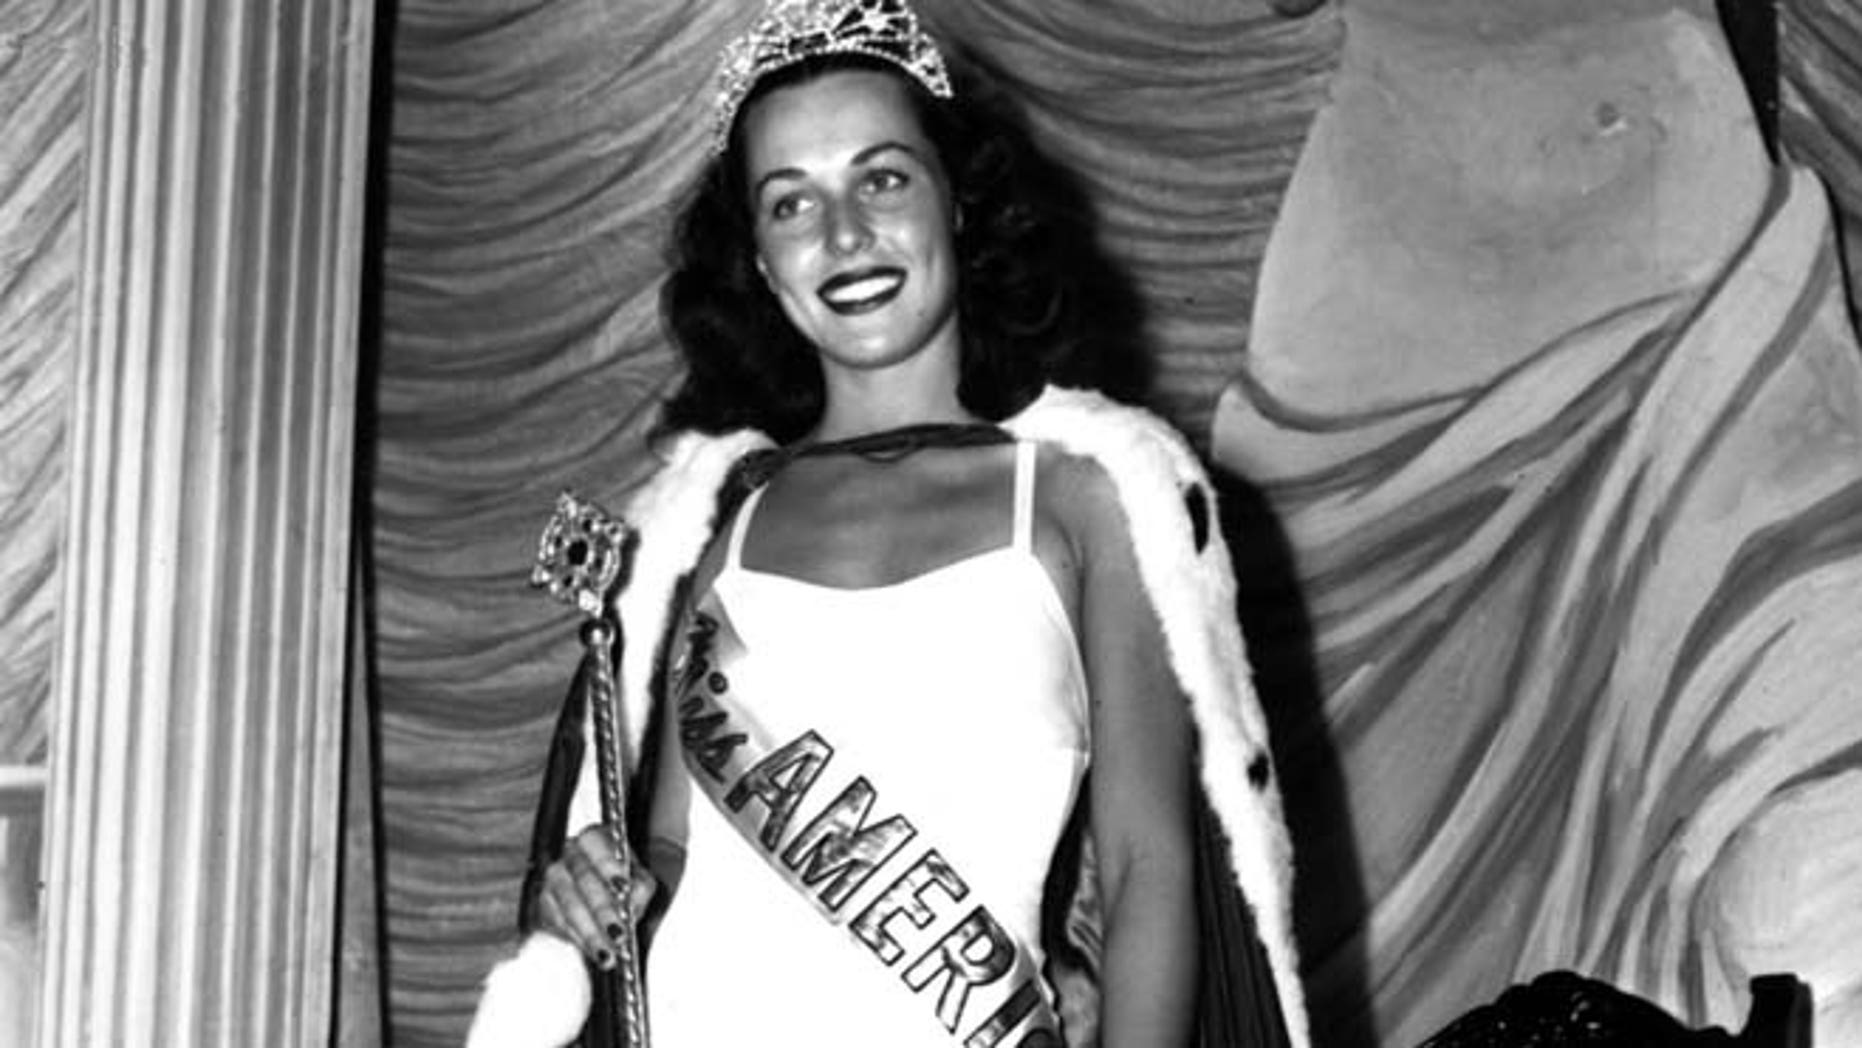 Sept. 8, 1945: Bess Myerson, of New York, holds the scepter after being crowned Miss America 1945 at the annual Miss America pageant in Atlantic City, N.J.